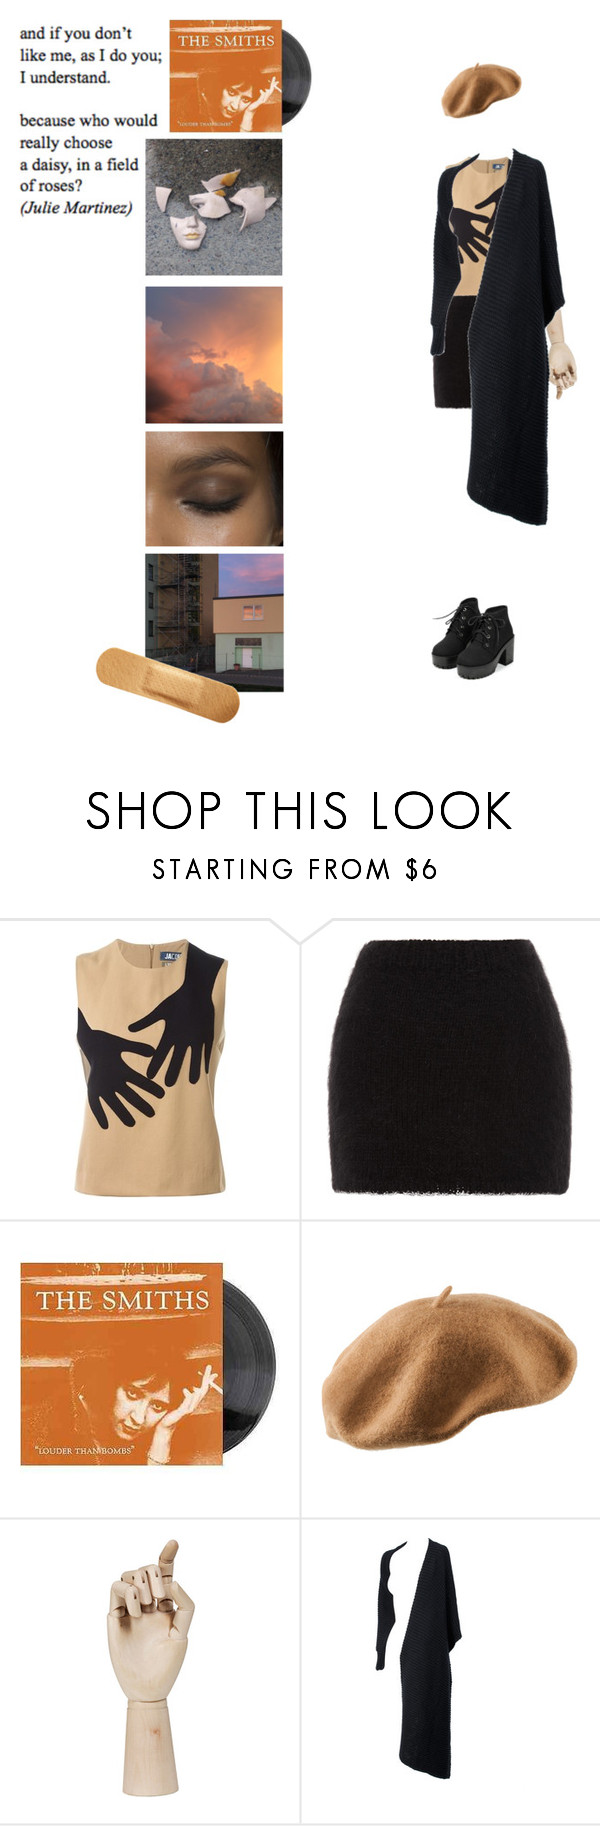 """I understand."" by onemorerainyday ❤ liked on Polyvore featuring Jacquemus, Rodarte, H&M, HAY and Alexander Wang"